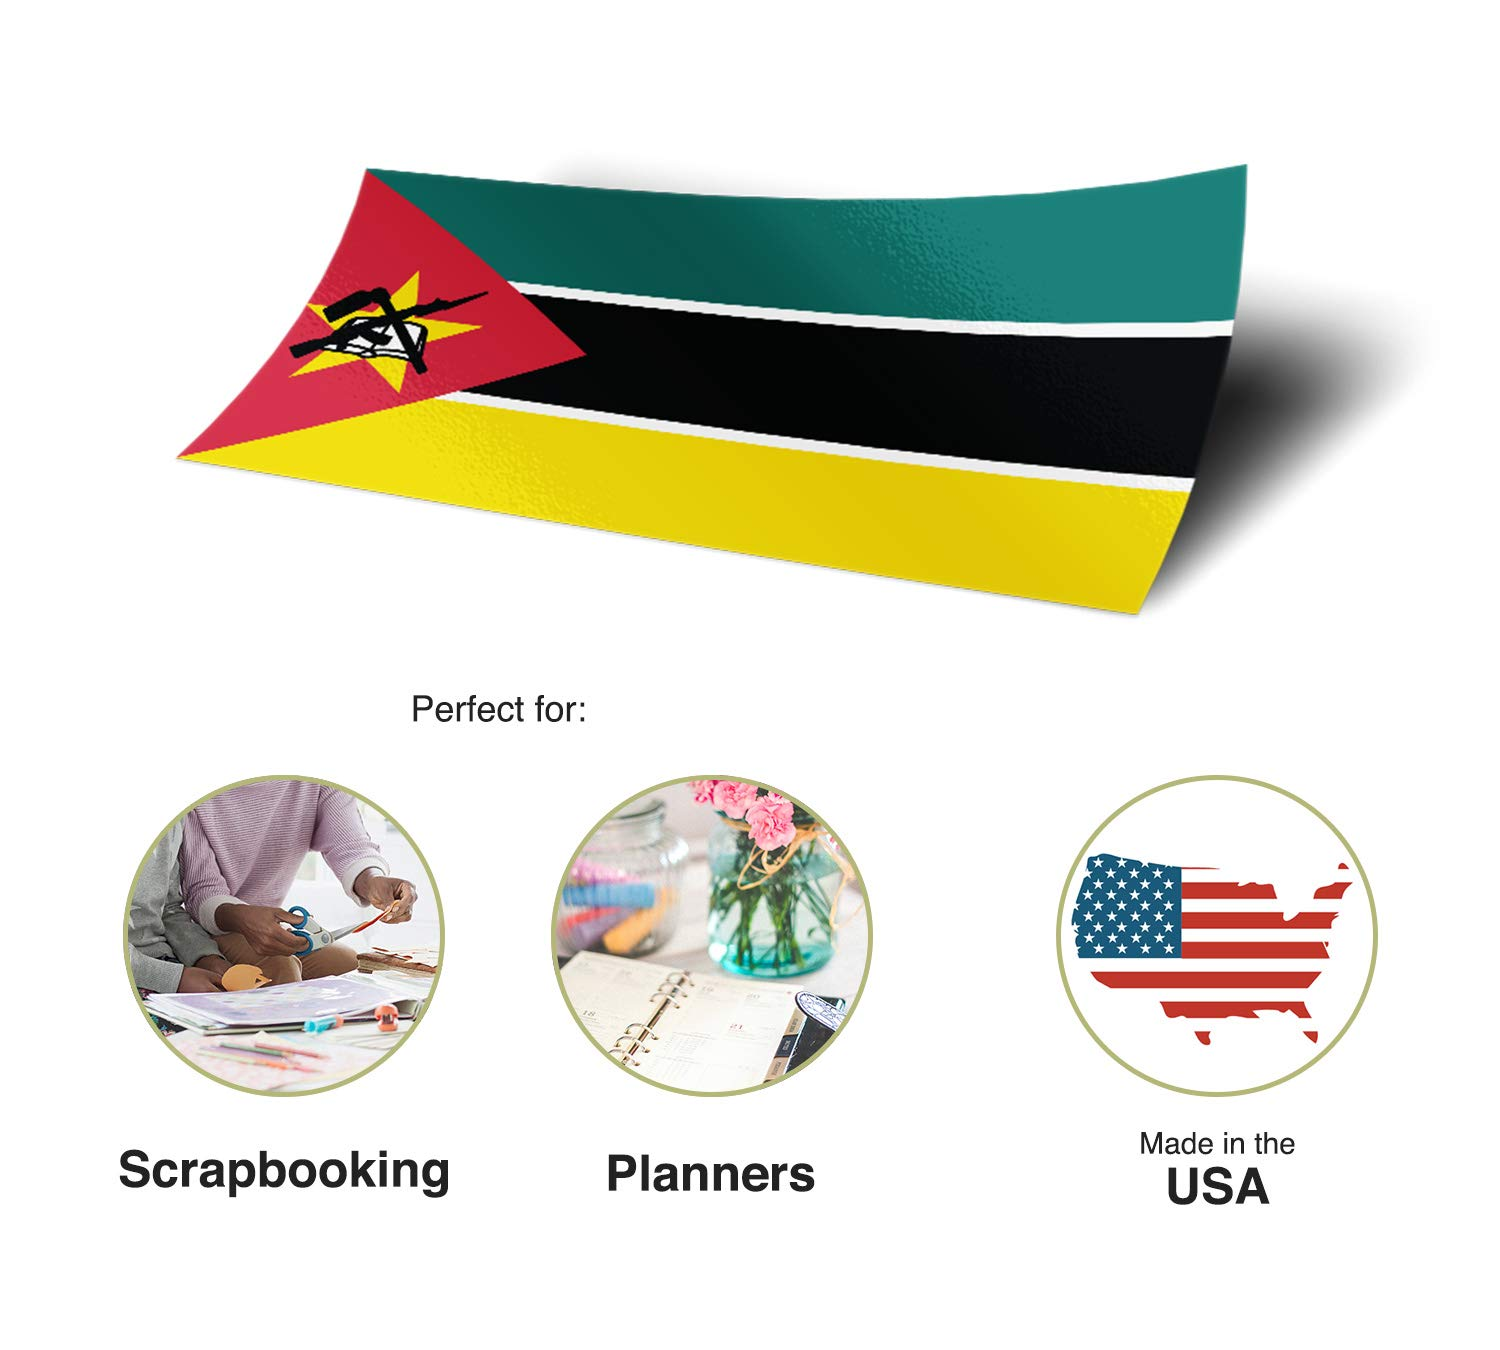 Desert Cactus Mozambique Country Flag Sticker Decal Variety Size Pack 8 Total Pieces Kids Logo Scrapbook Car Vinyl Window Bumper Laptop V